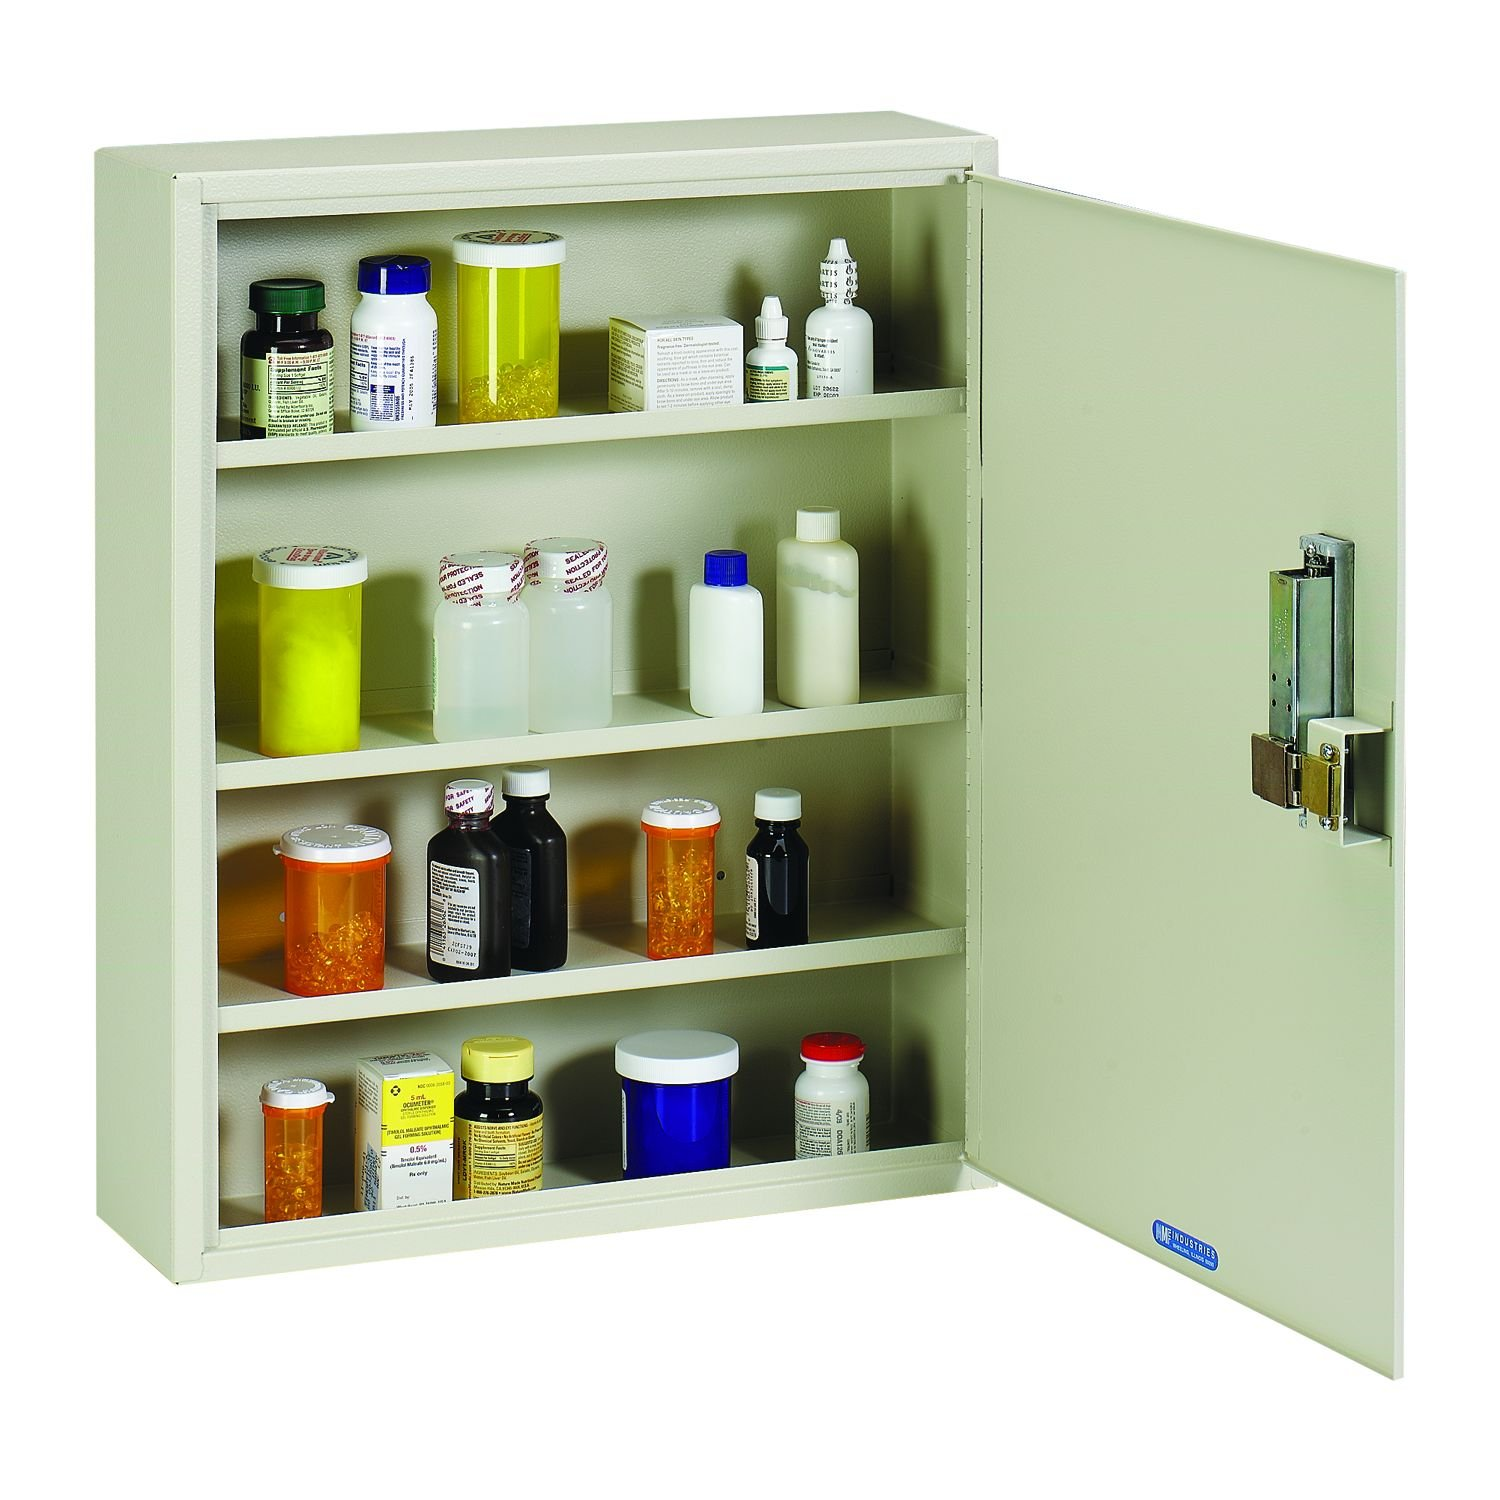 Amazon.com : STEELMASTER Large Medical Security Cabinet, Dual ...